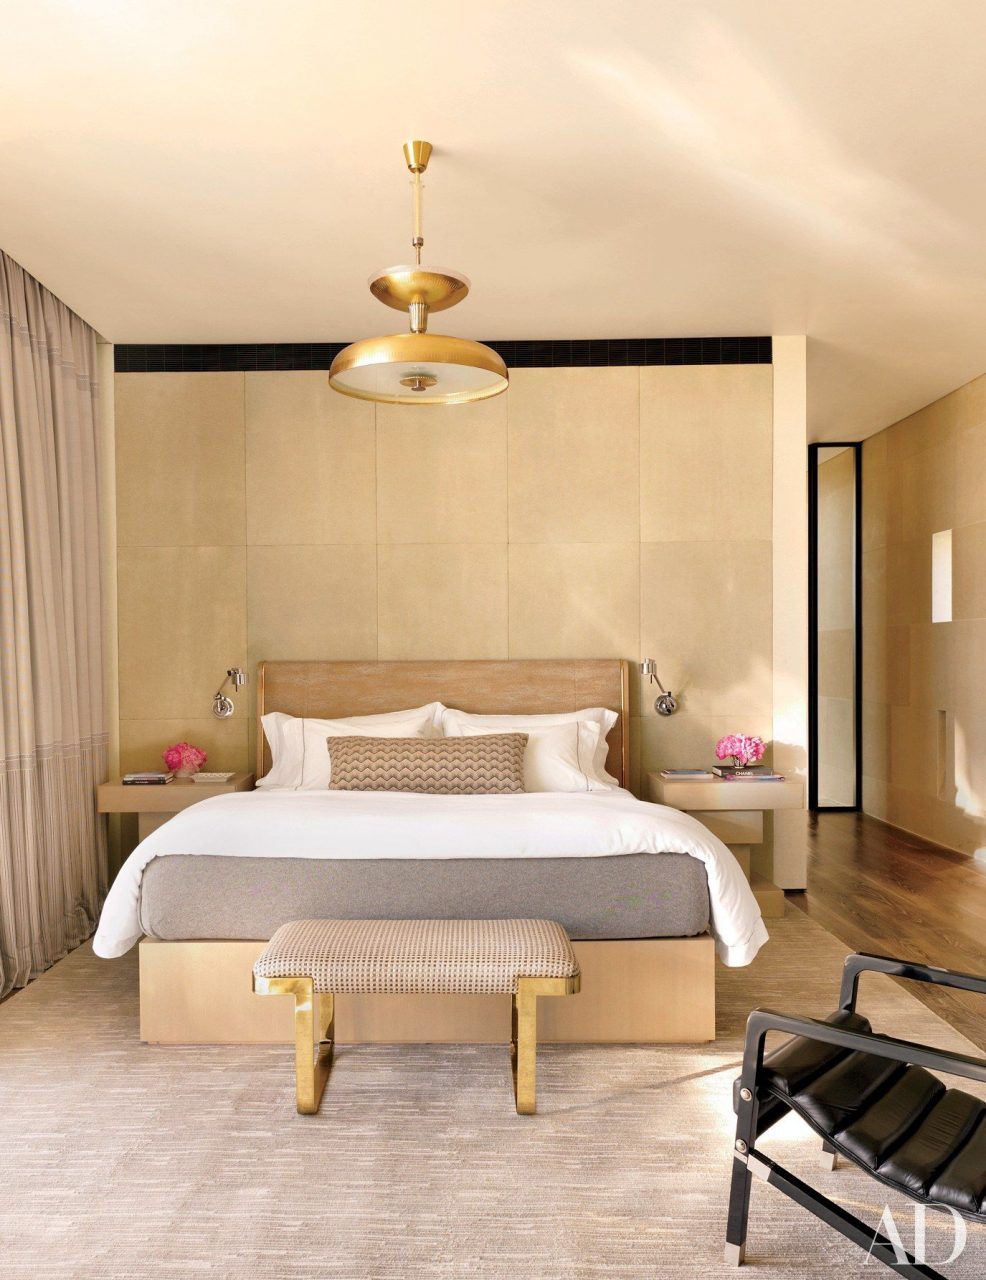 The Minimalist Bedrooms Of Your Dreams Bedrooms Minimalist